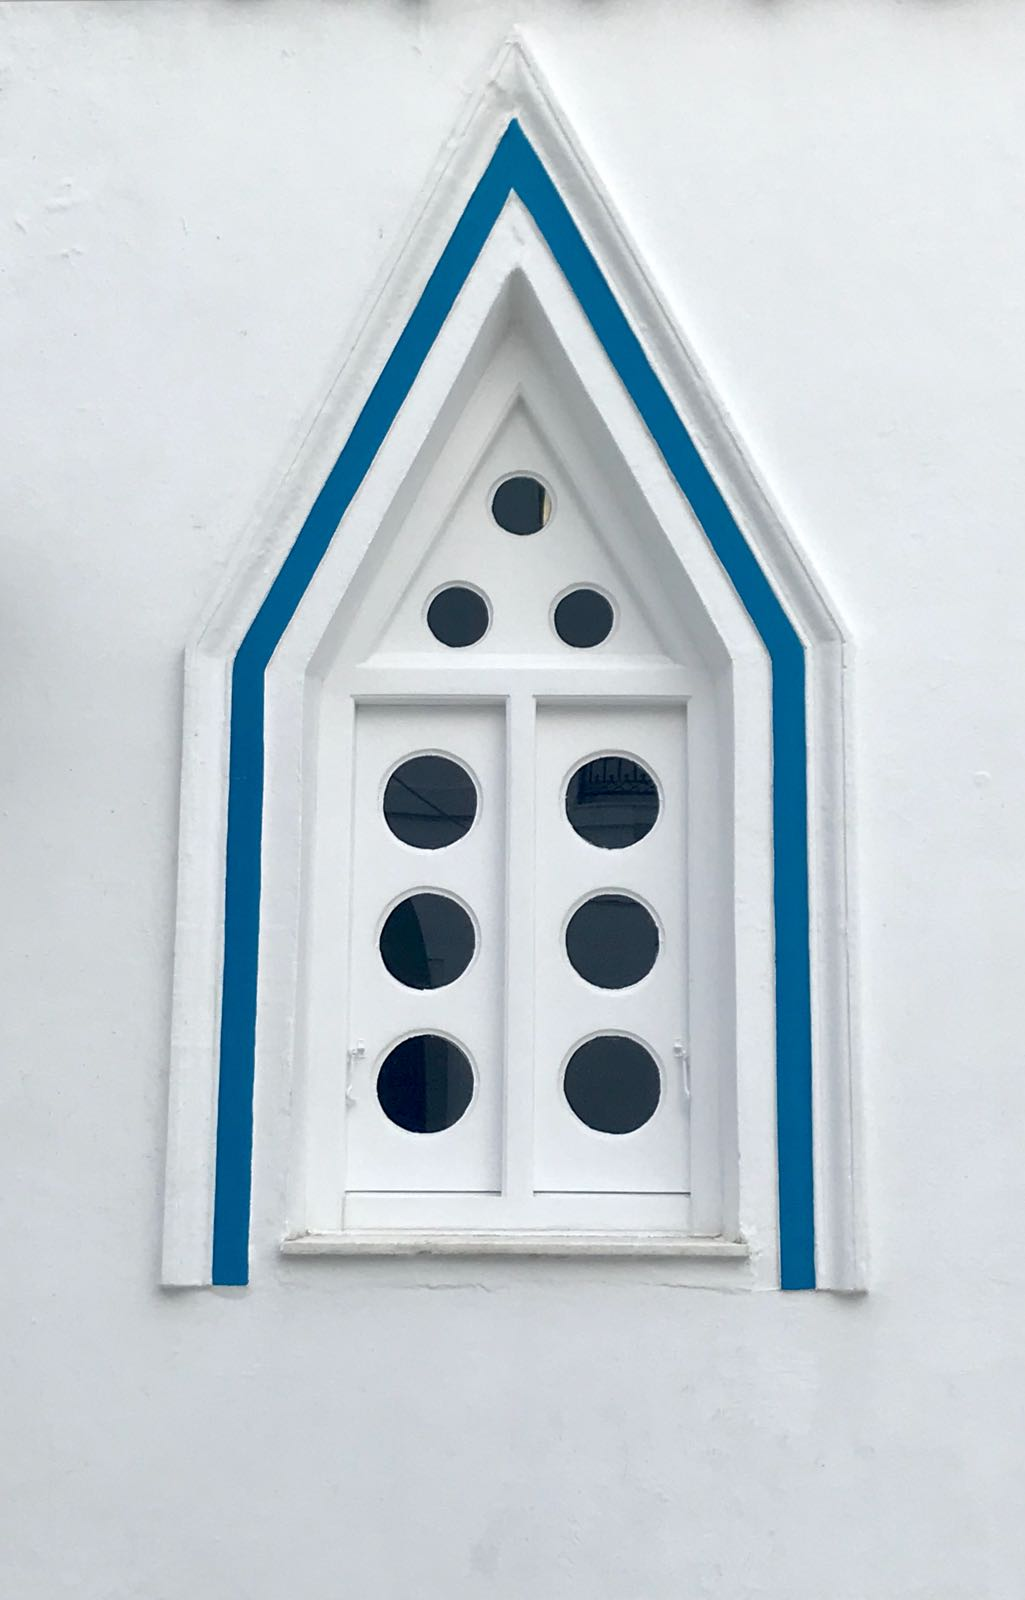 Triangular window frame surrounding opaque shutters each inset with circular holes